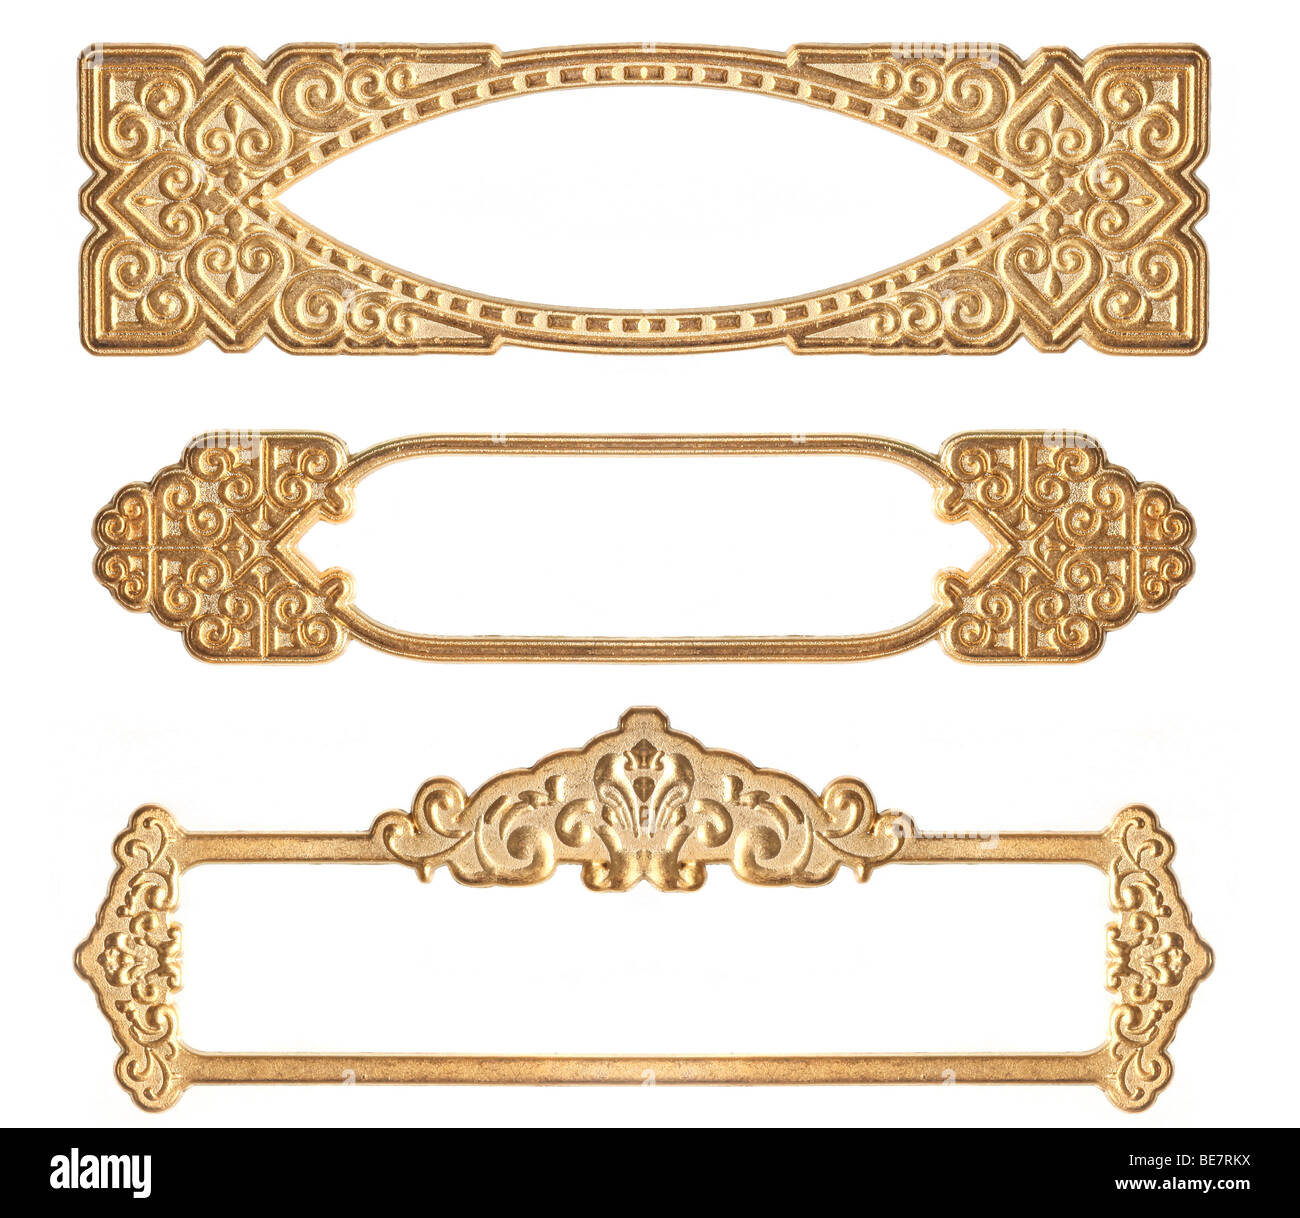 Three Golden Embossed Guilded Frames on White Background - Stock Image